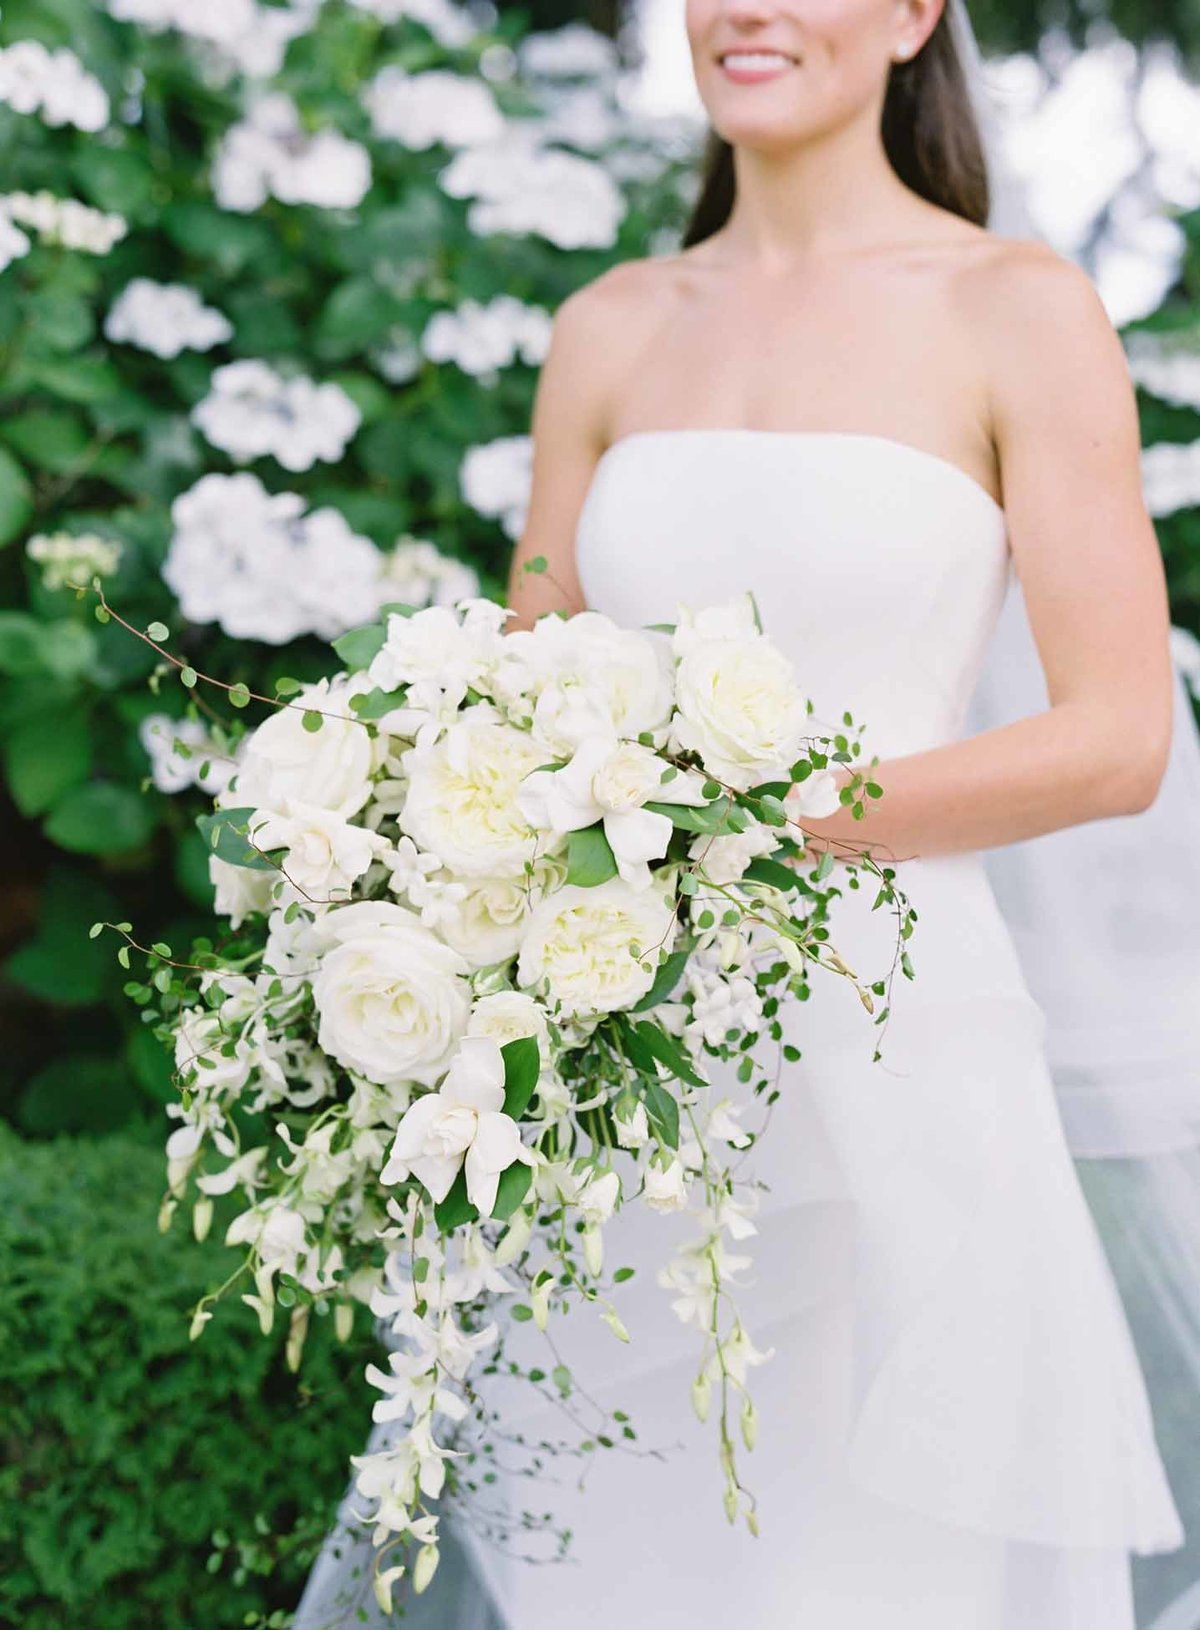 Beautiful bridal cascade bouquet of garden roses, gardenias, and stephanotis.